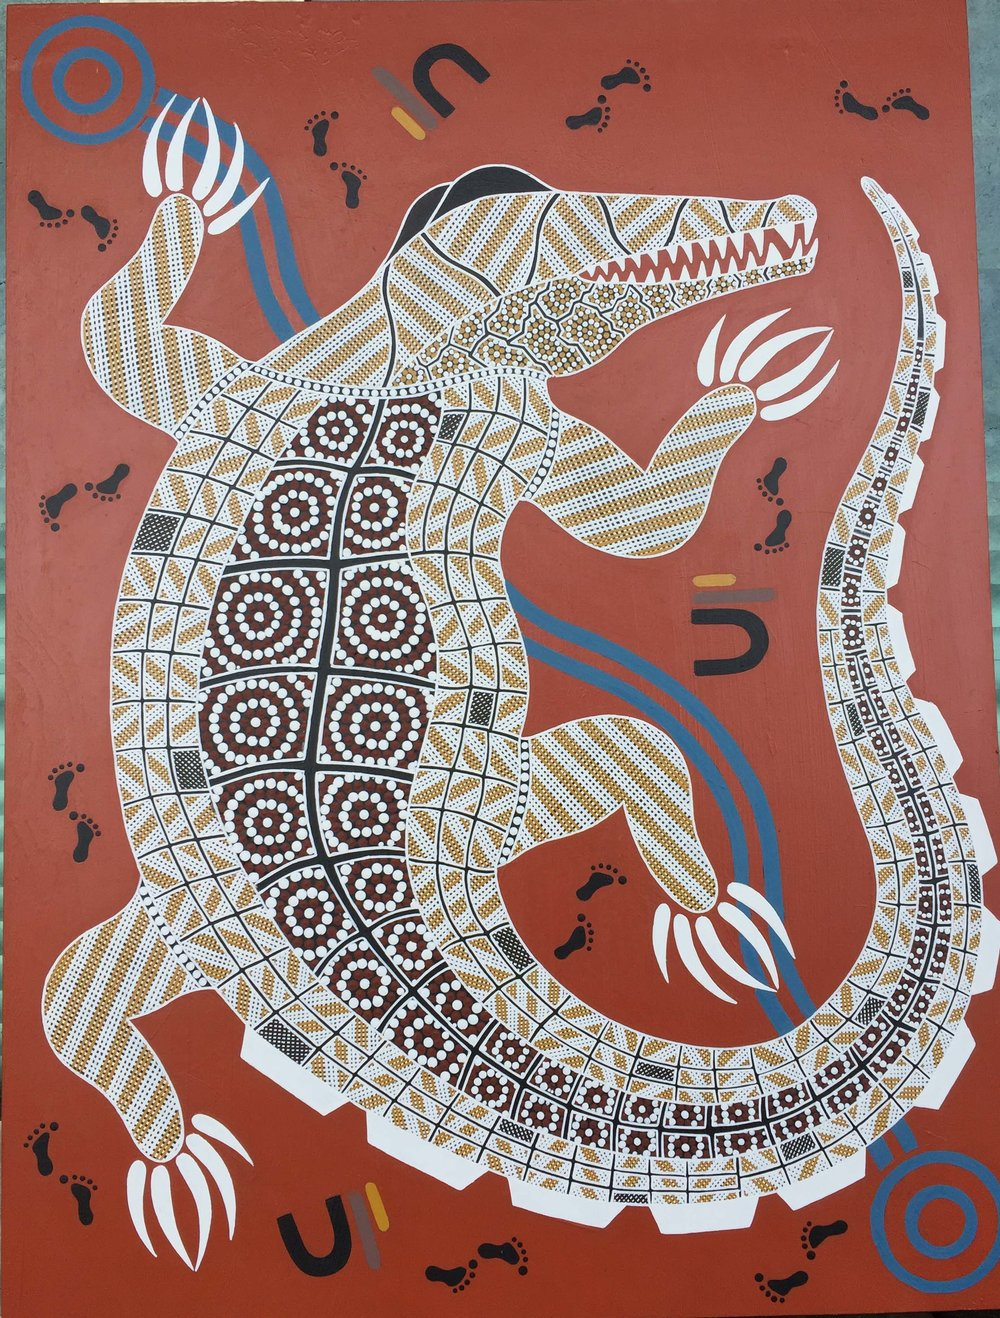 Unknown Artist, Images courtesy of CSNSW